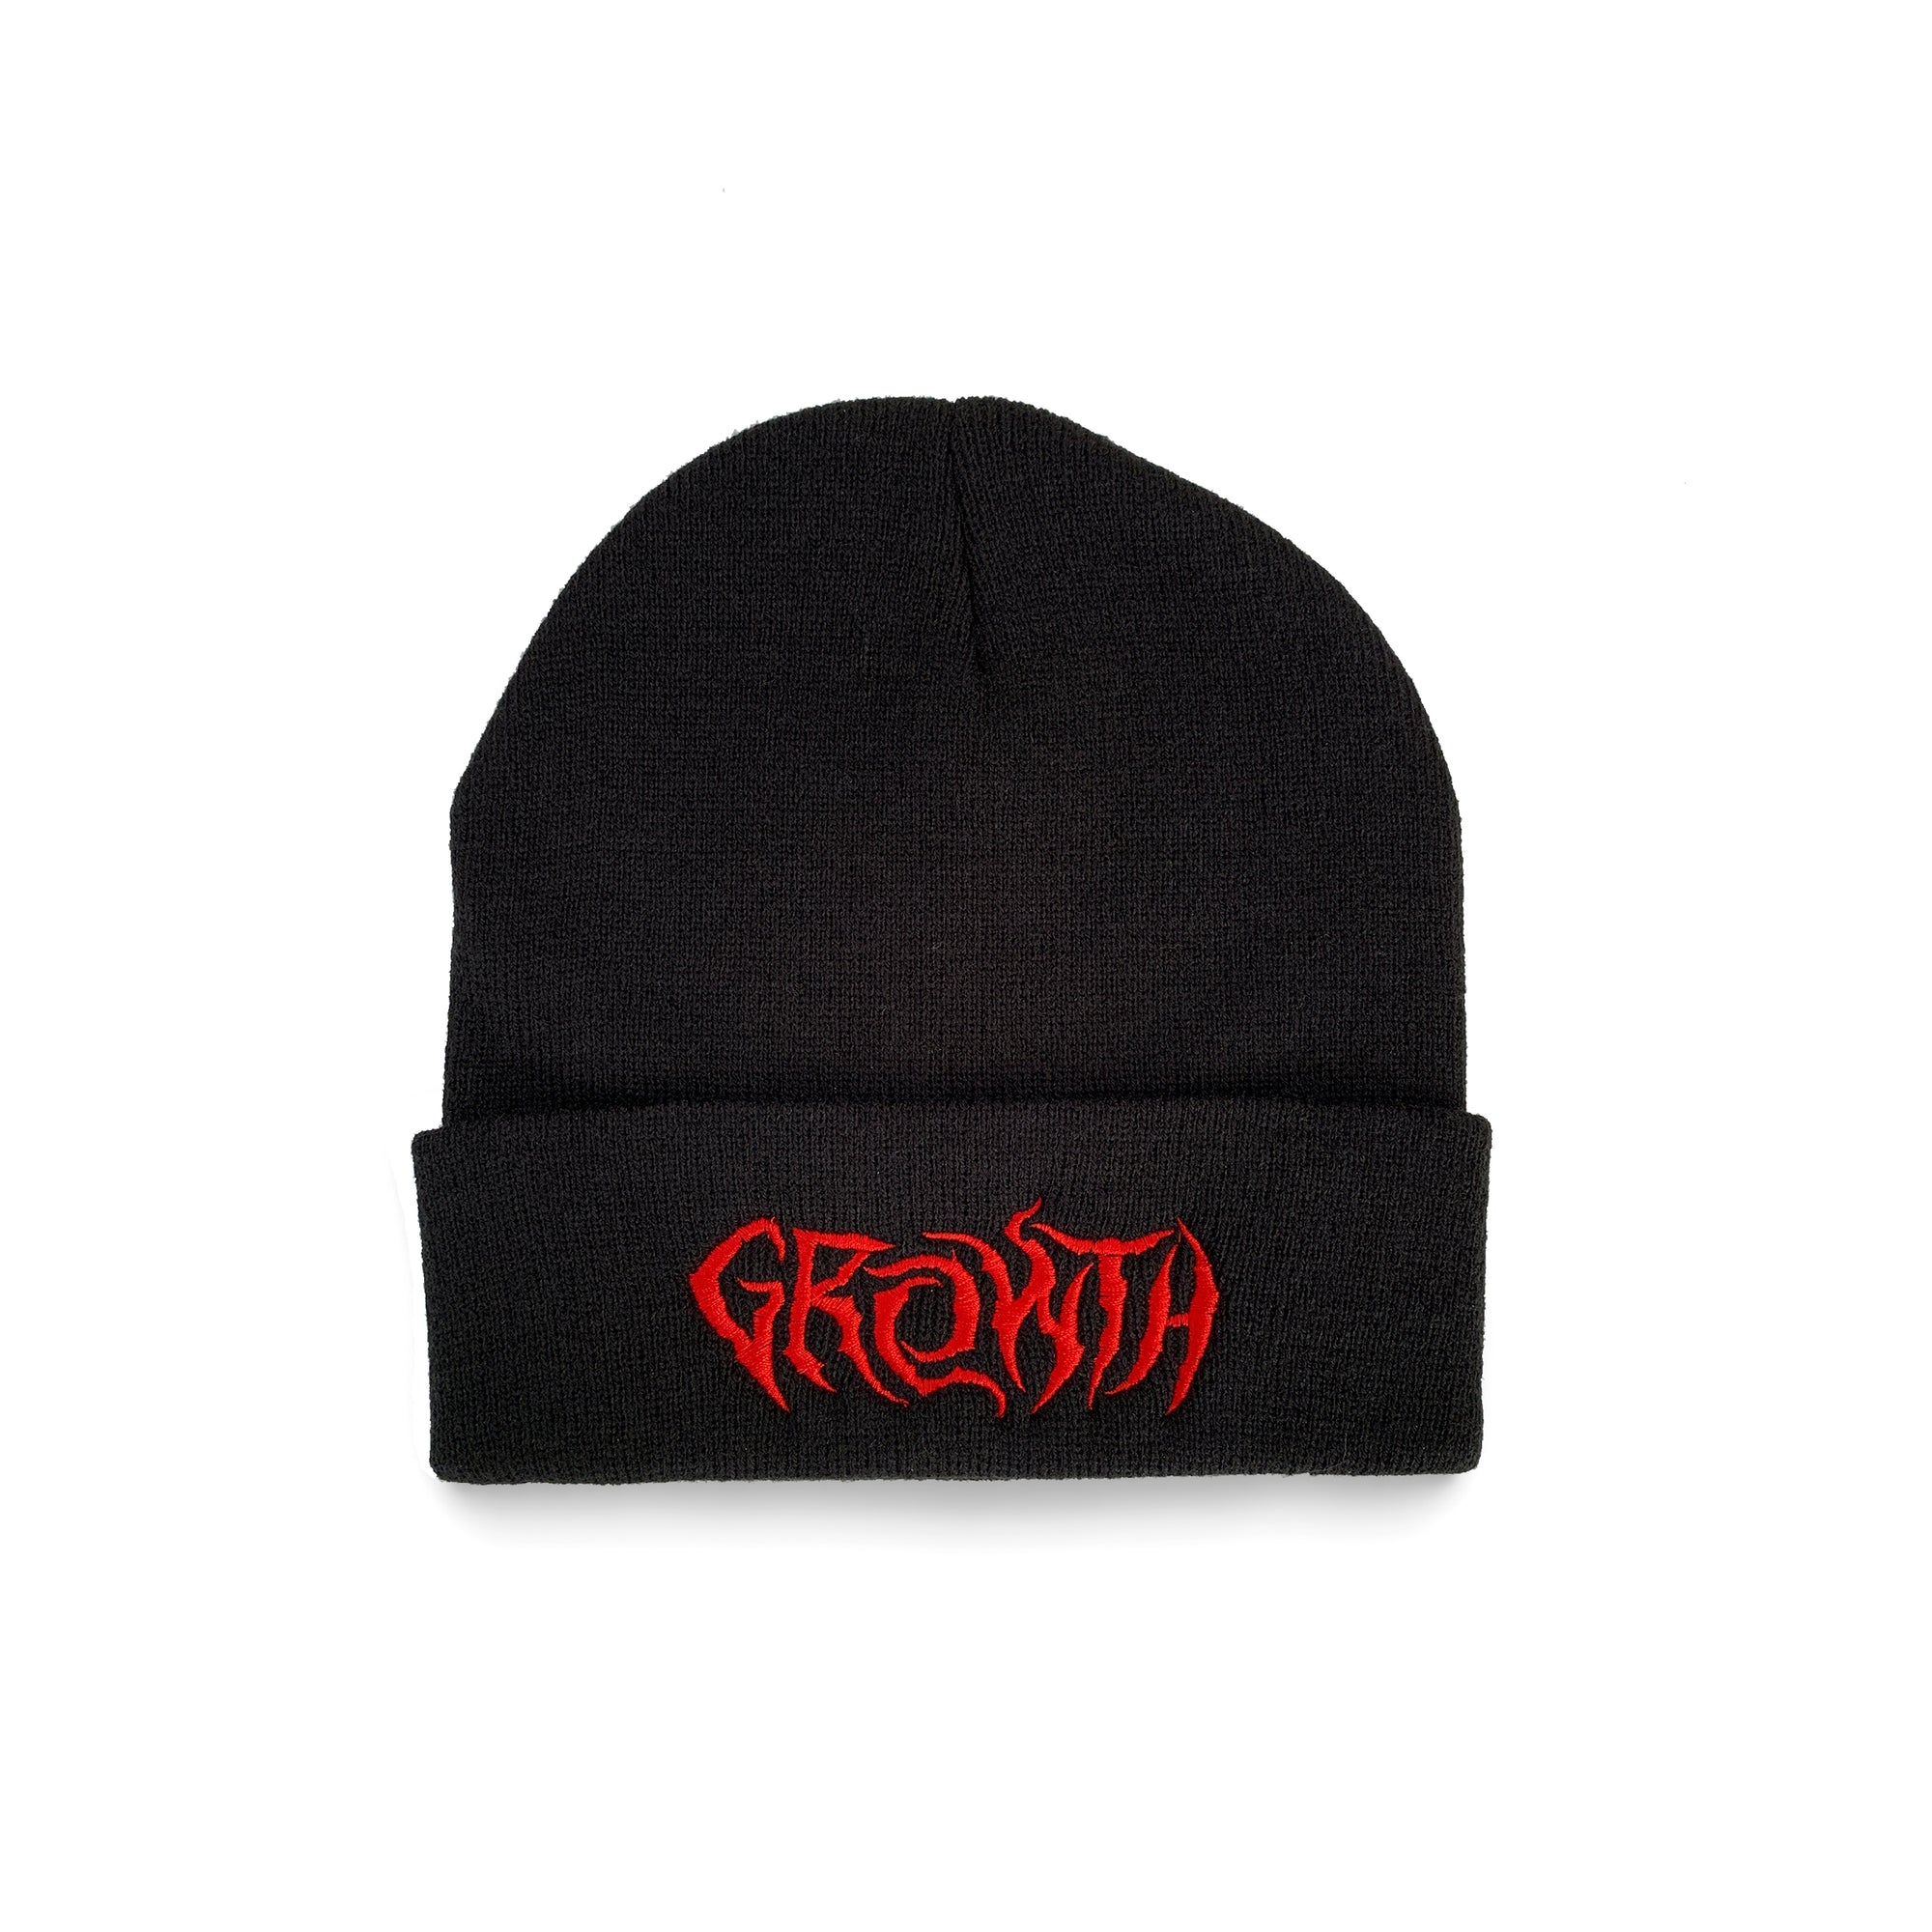 GROWTH // RED BEANIE - Wild Thing Records